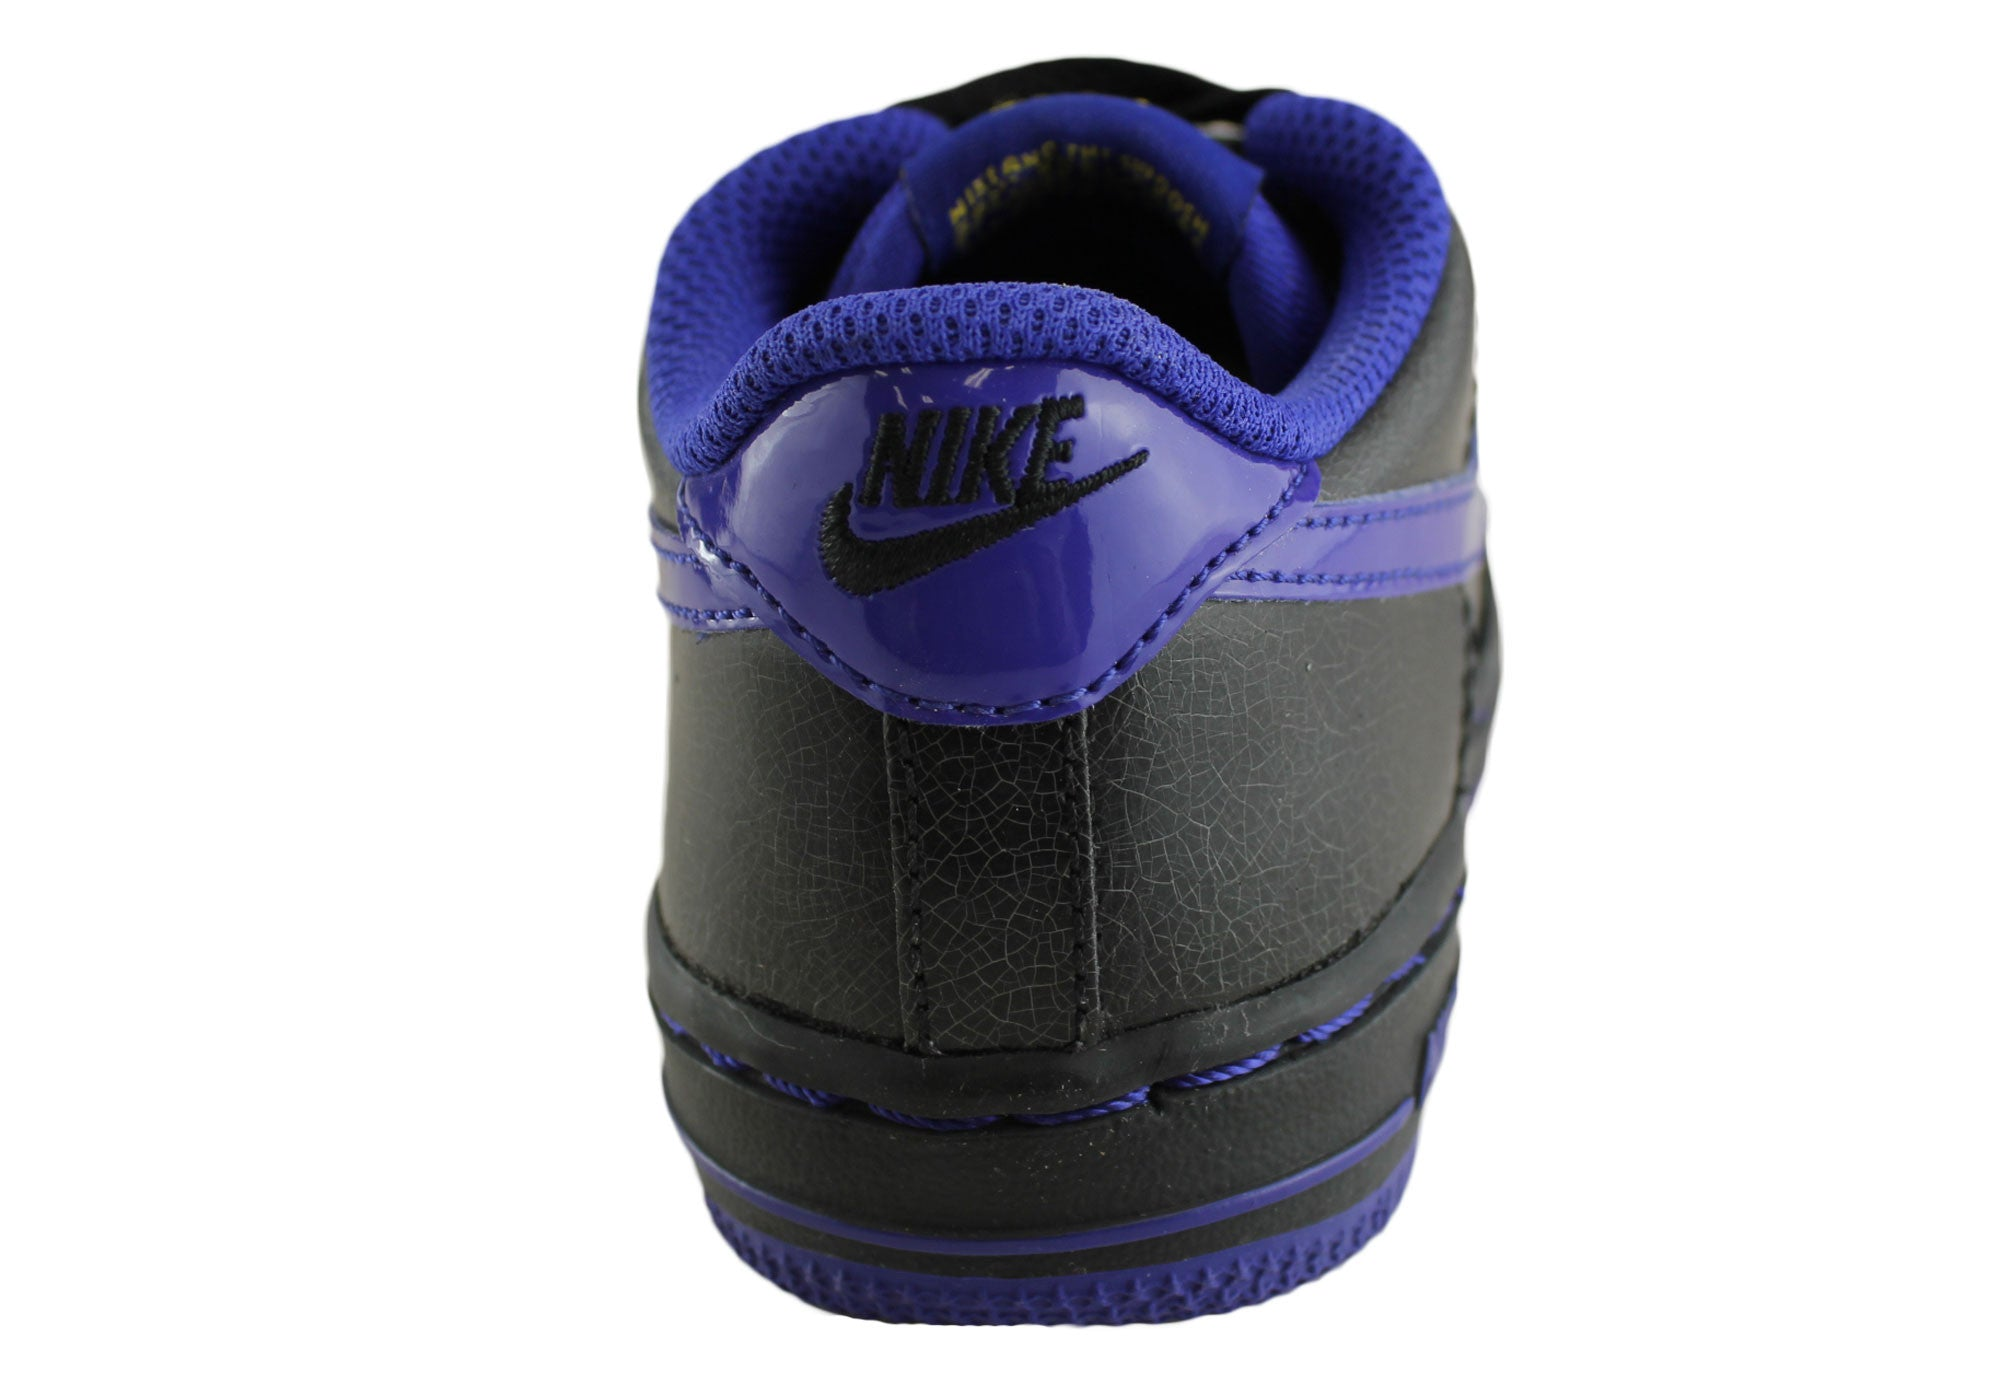 Nike Force Infant/Baby Shoes